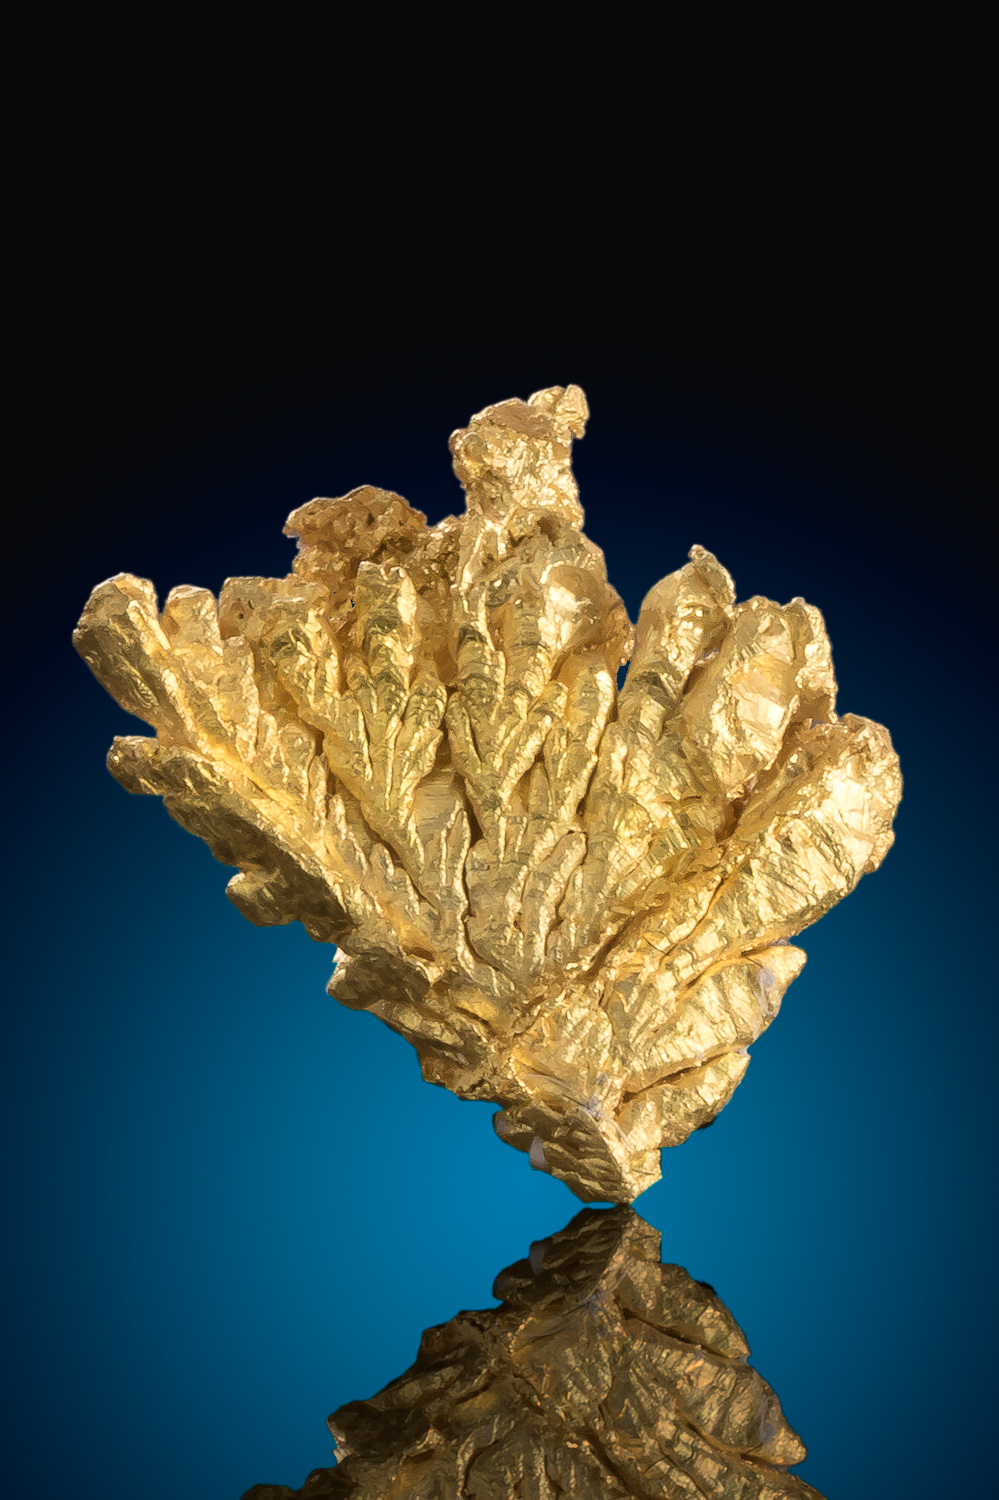 Magnificent Dendritic Gold Nugget Specimen - Diltz Gold Mine